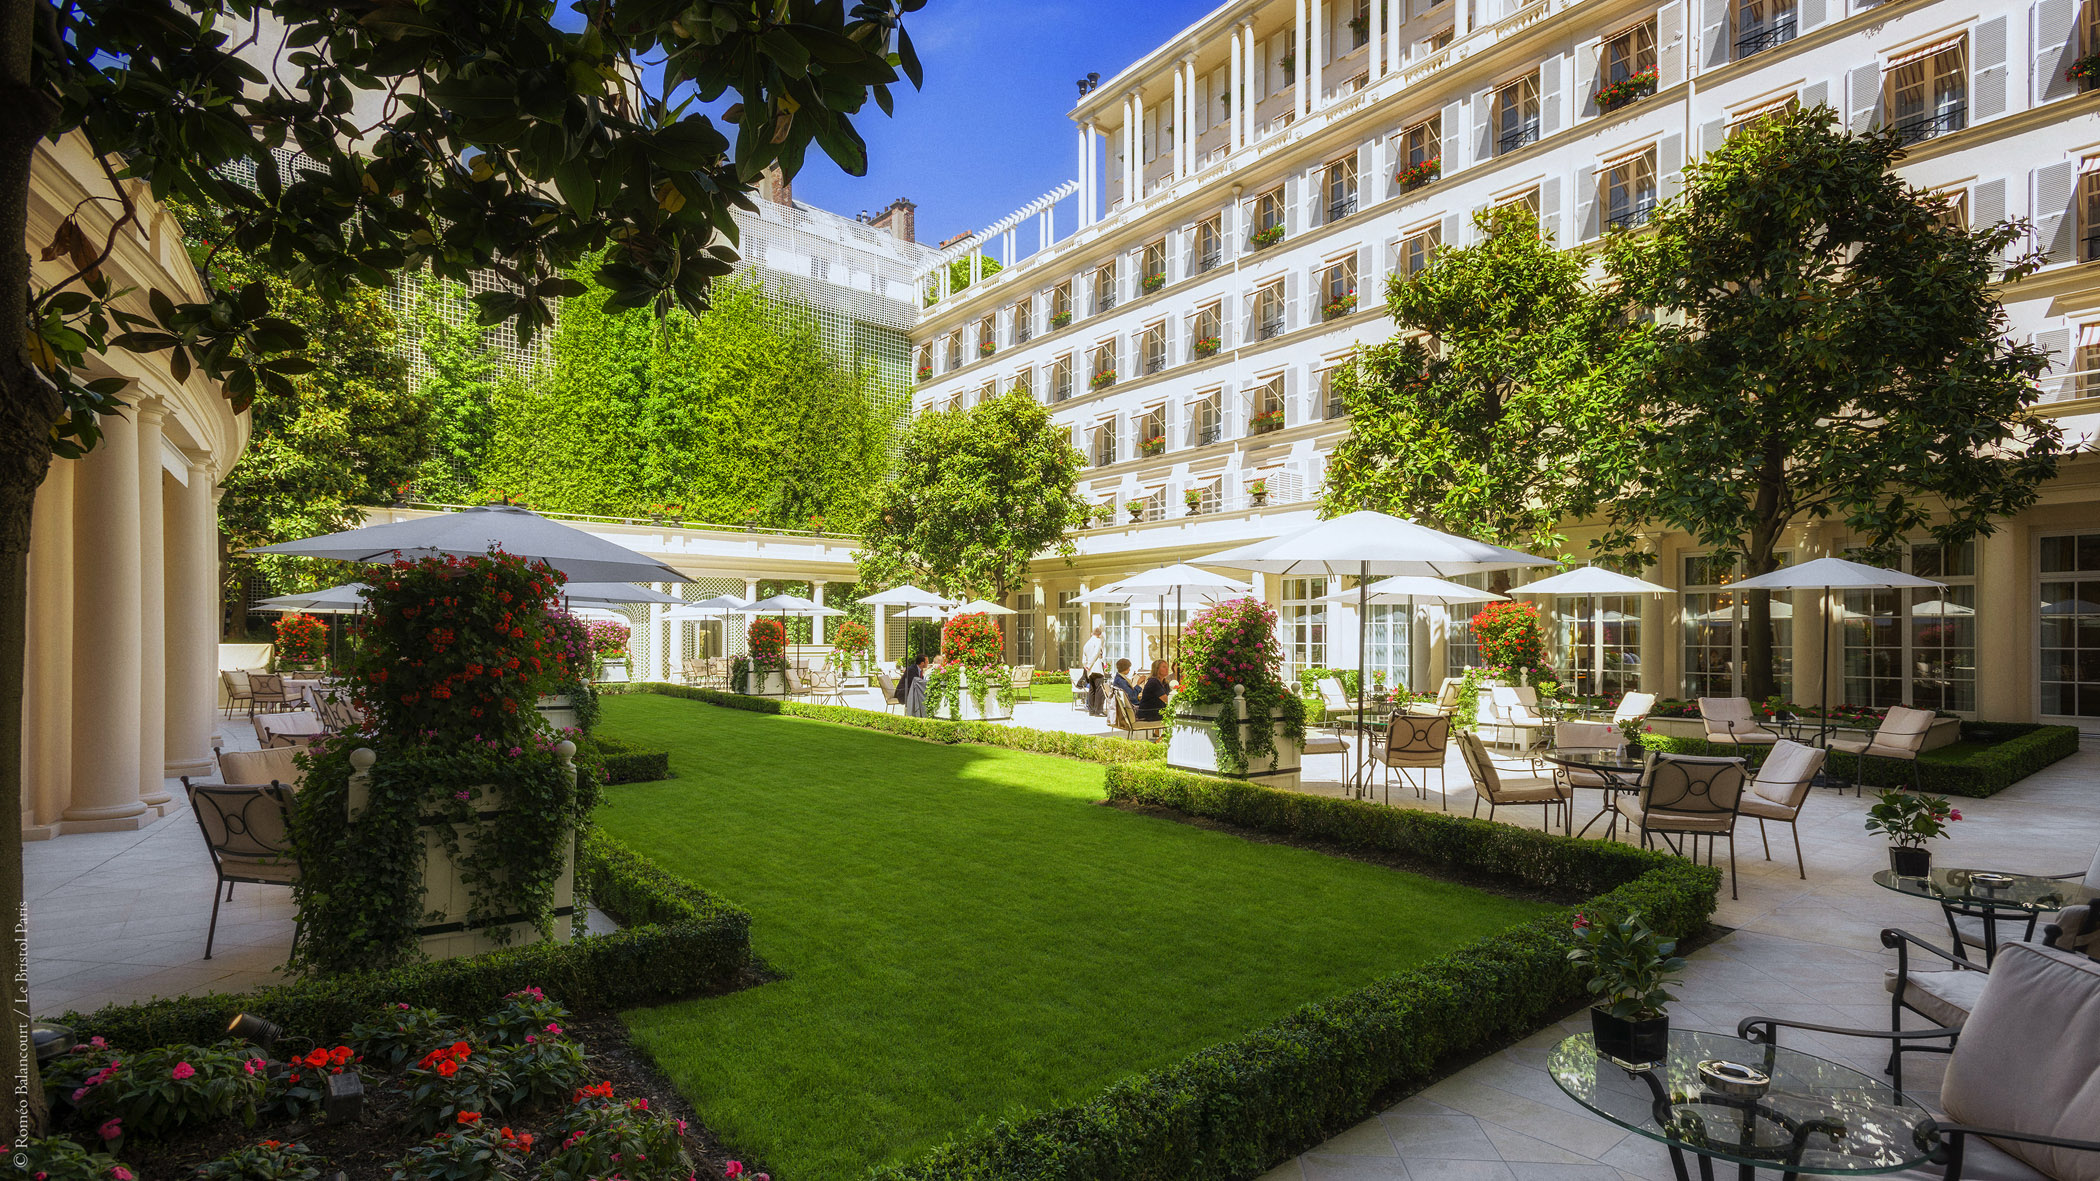 Le bristol paris class 1er h tel de france aux world s for Hotel george v jardins